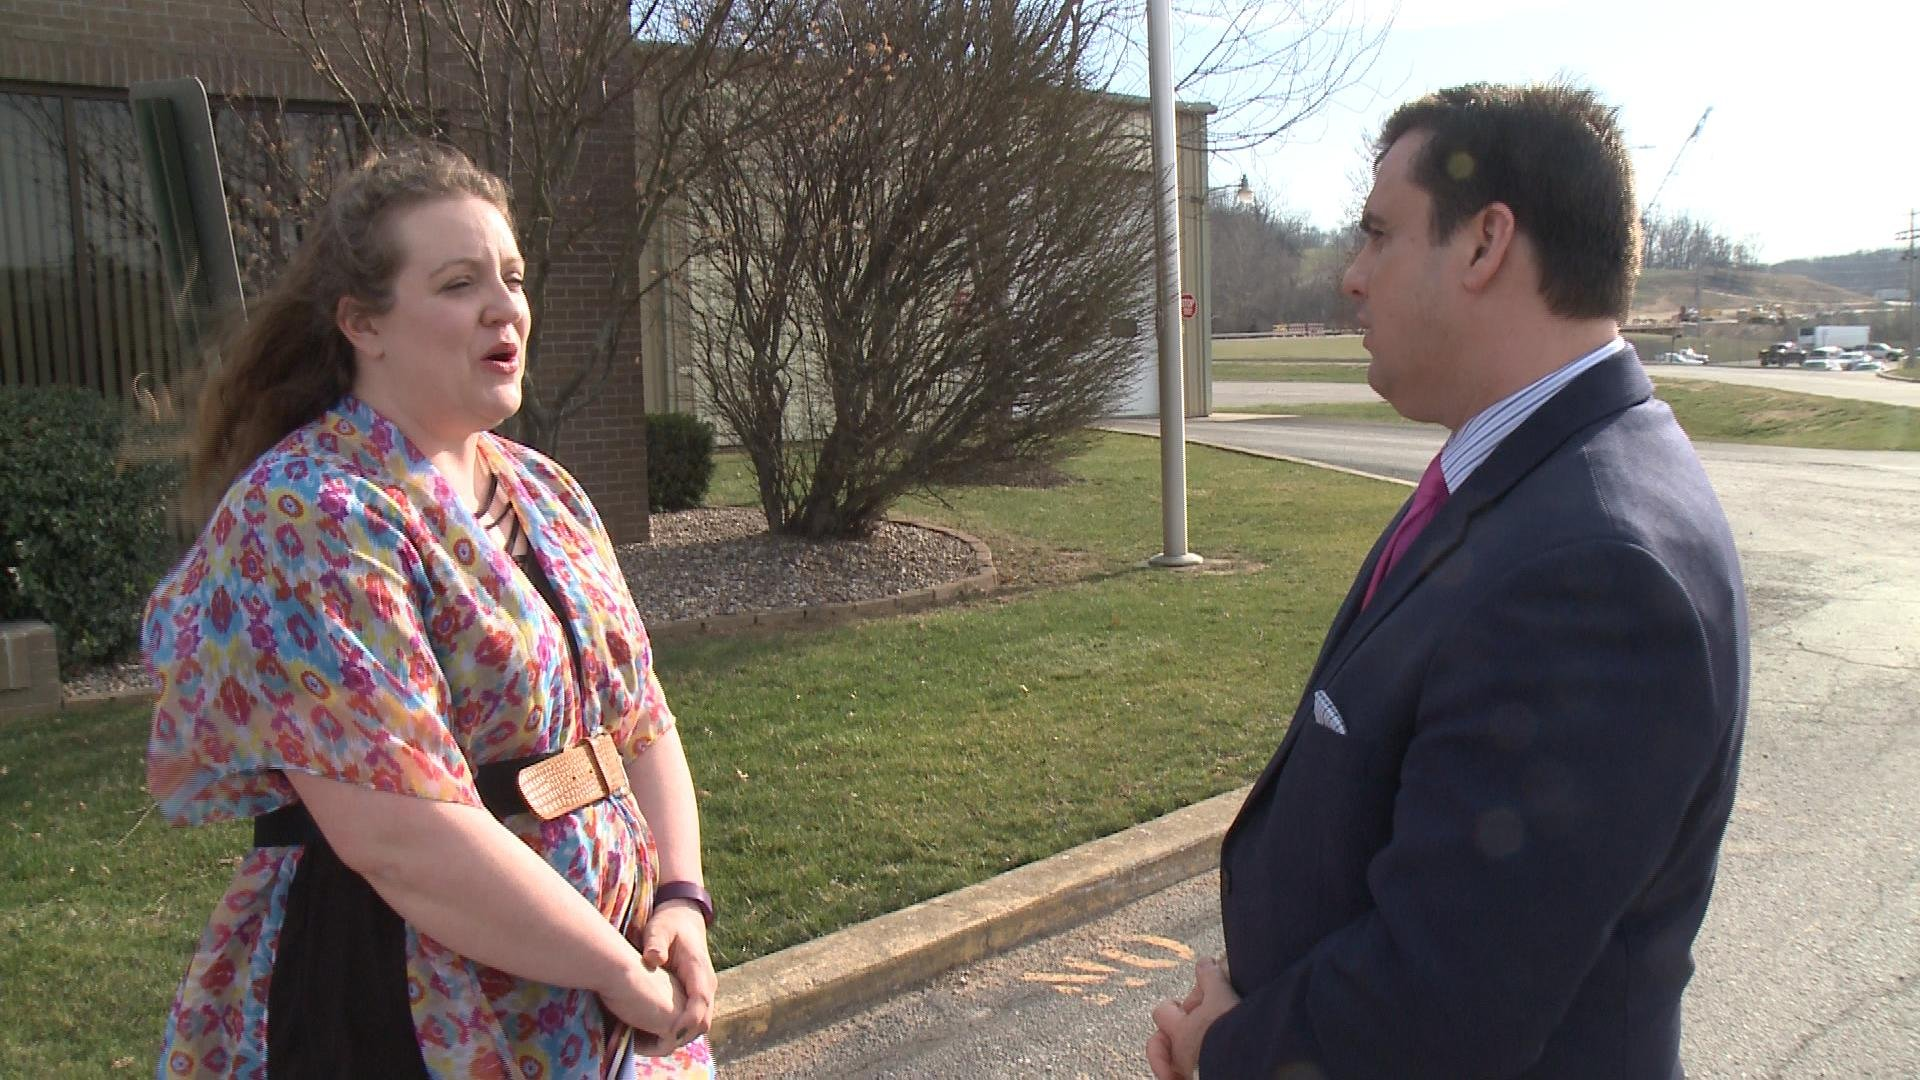 Kari Goodman, public relations with the Hannibal  Board of Public Works, speaks with WGEM's Gene Kennedy. HBPW says a 'yes' vote on Prop. 1 comes with some real concerns.